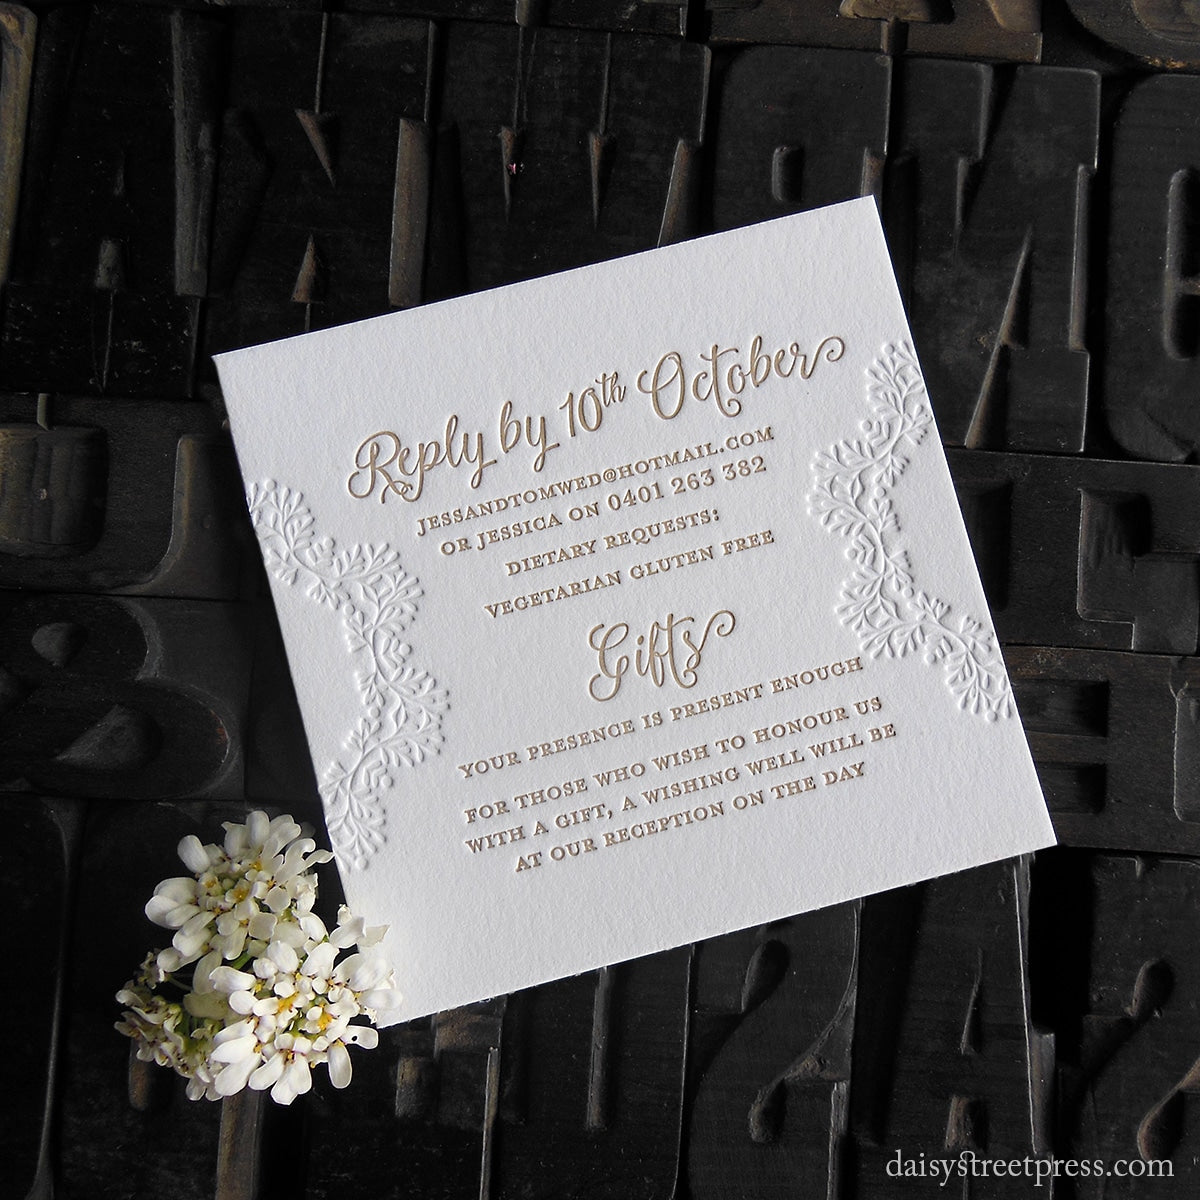 Edelweiss | Lovely letterpress wedding invite by Daisy Street Press